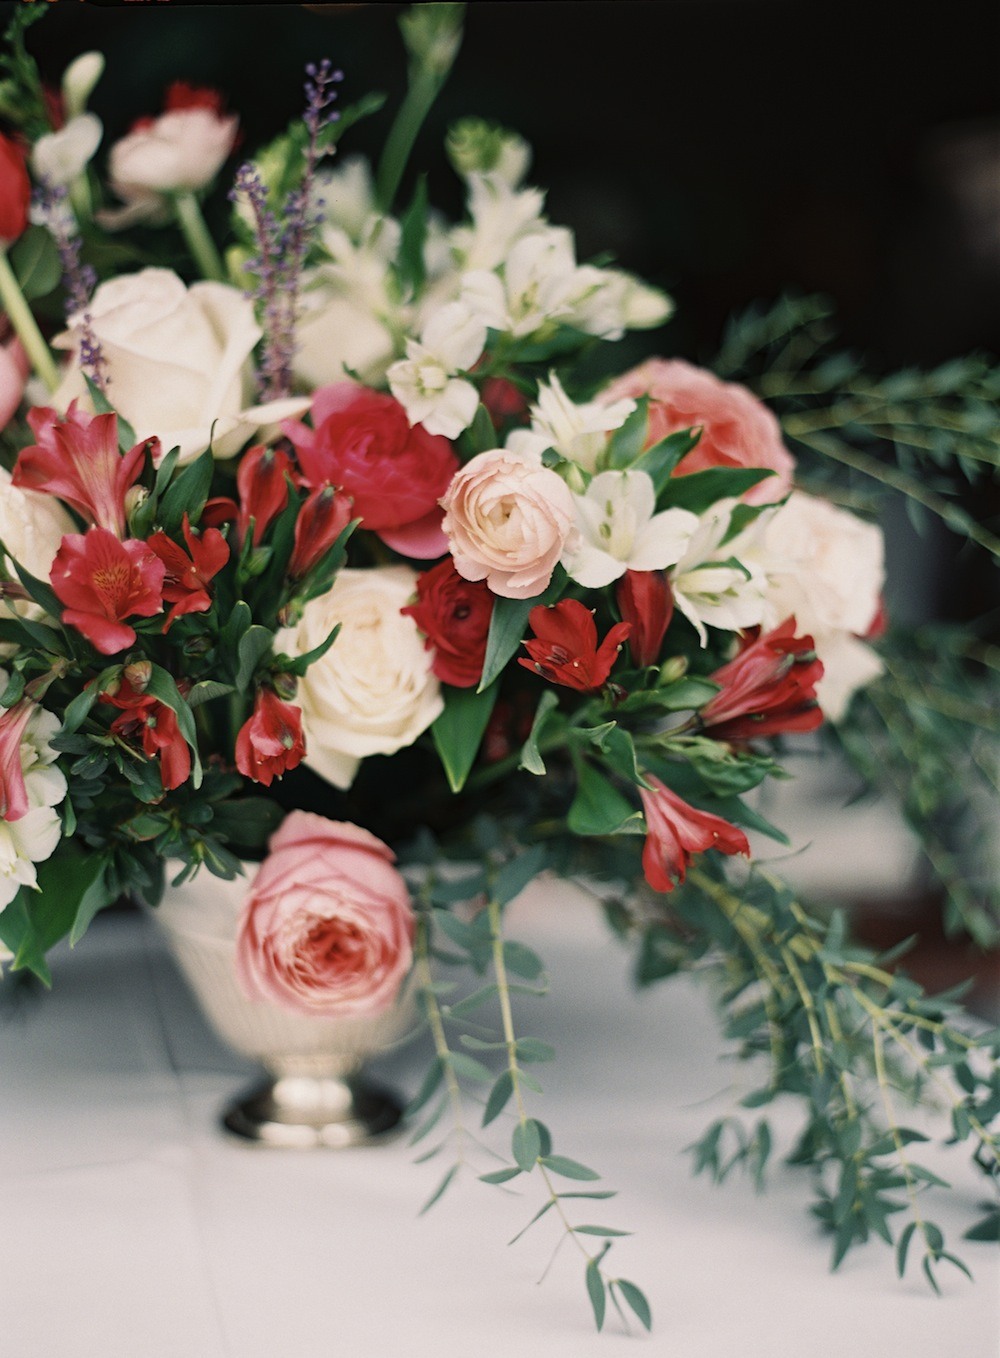 The floral arrangements in our vintage silver vessels were stunning!